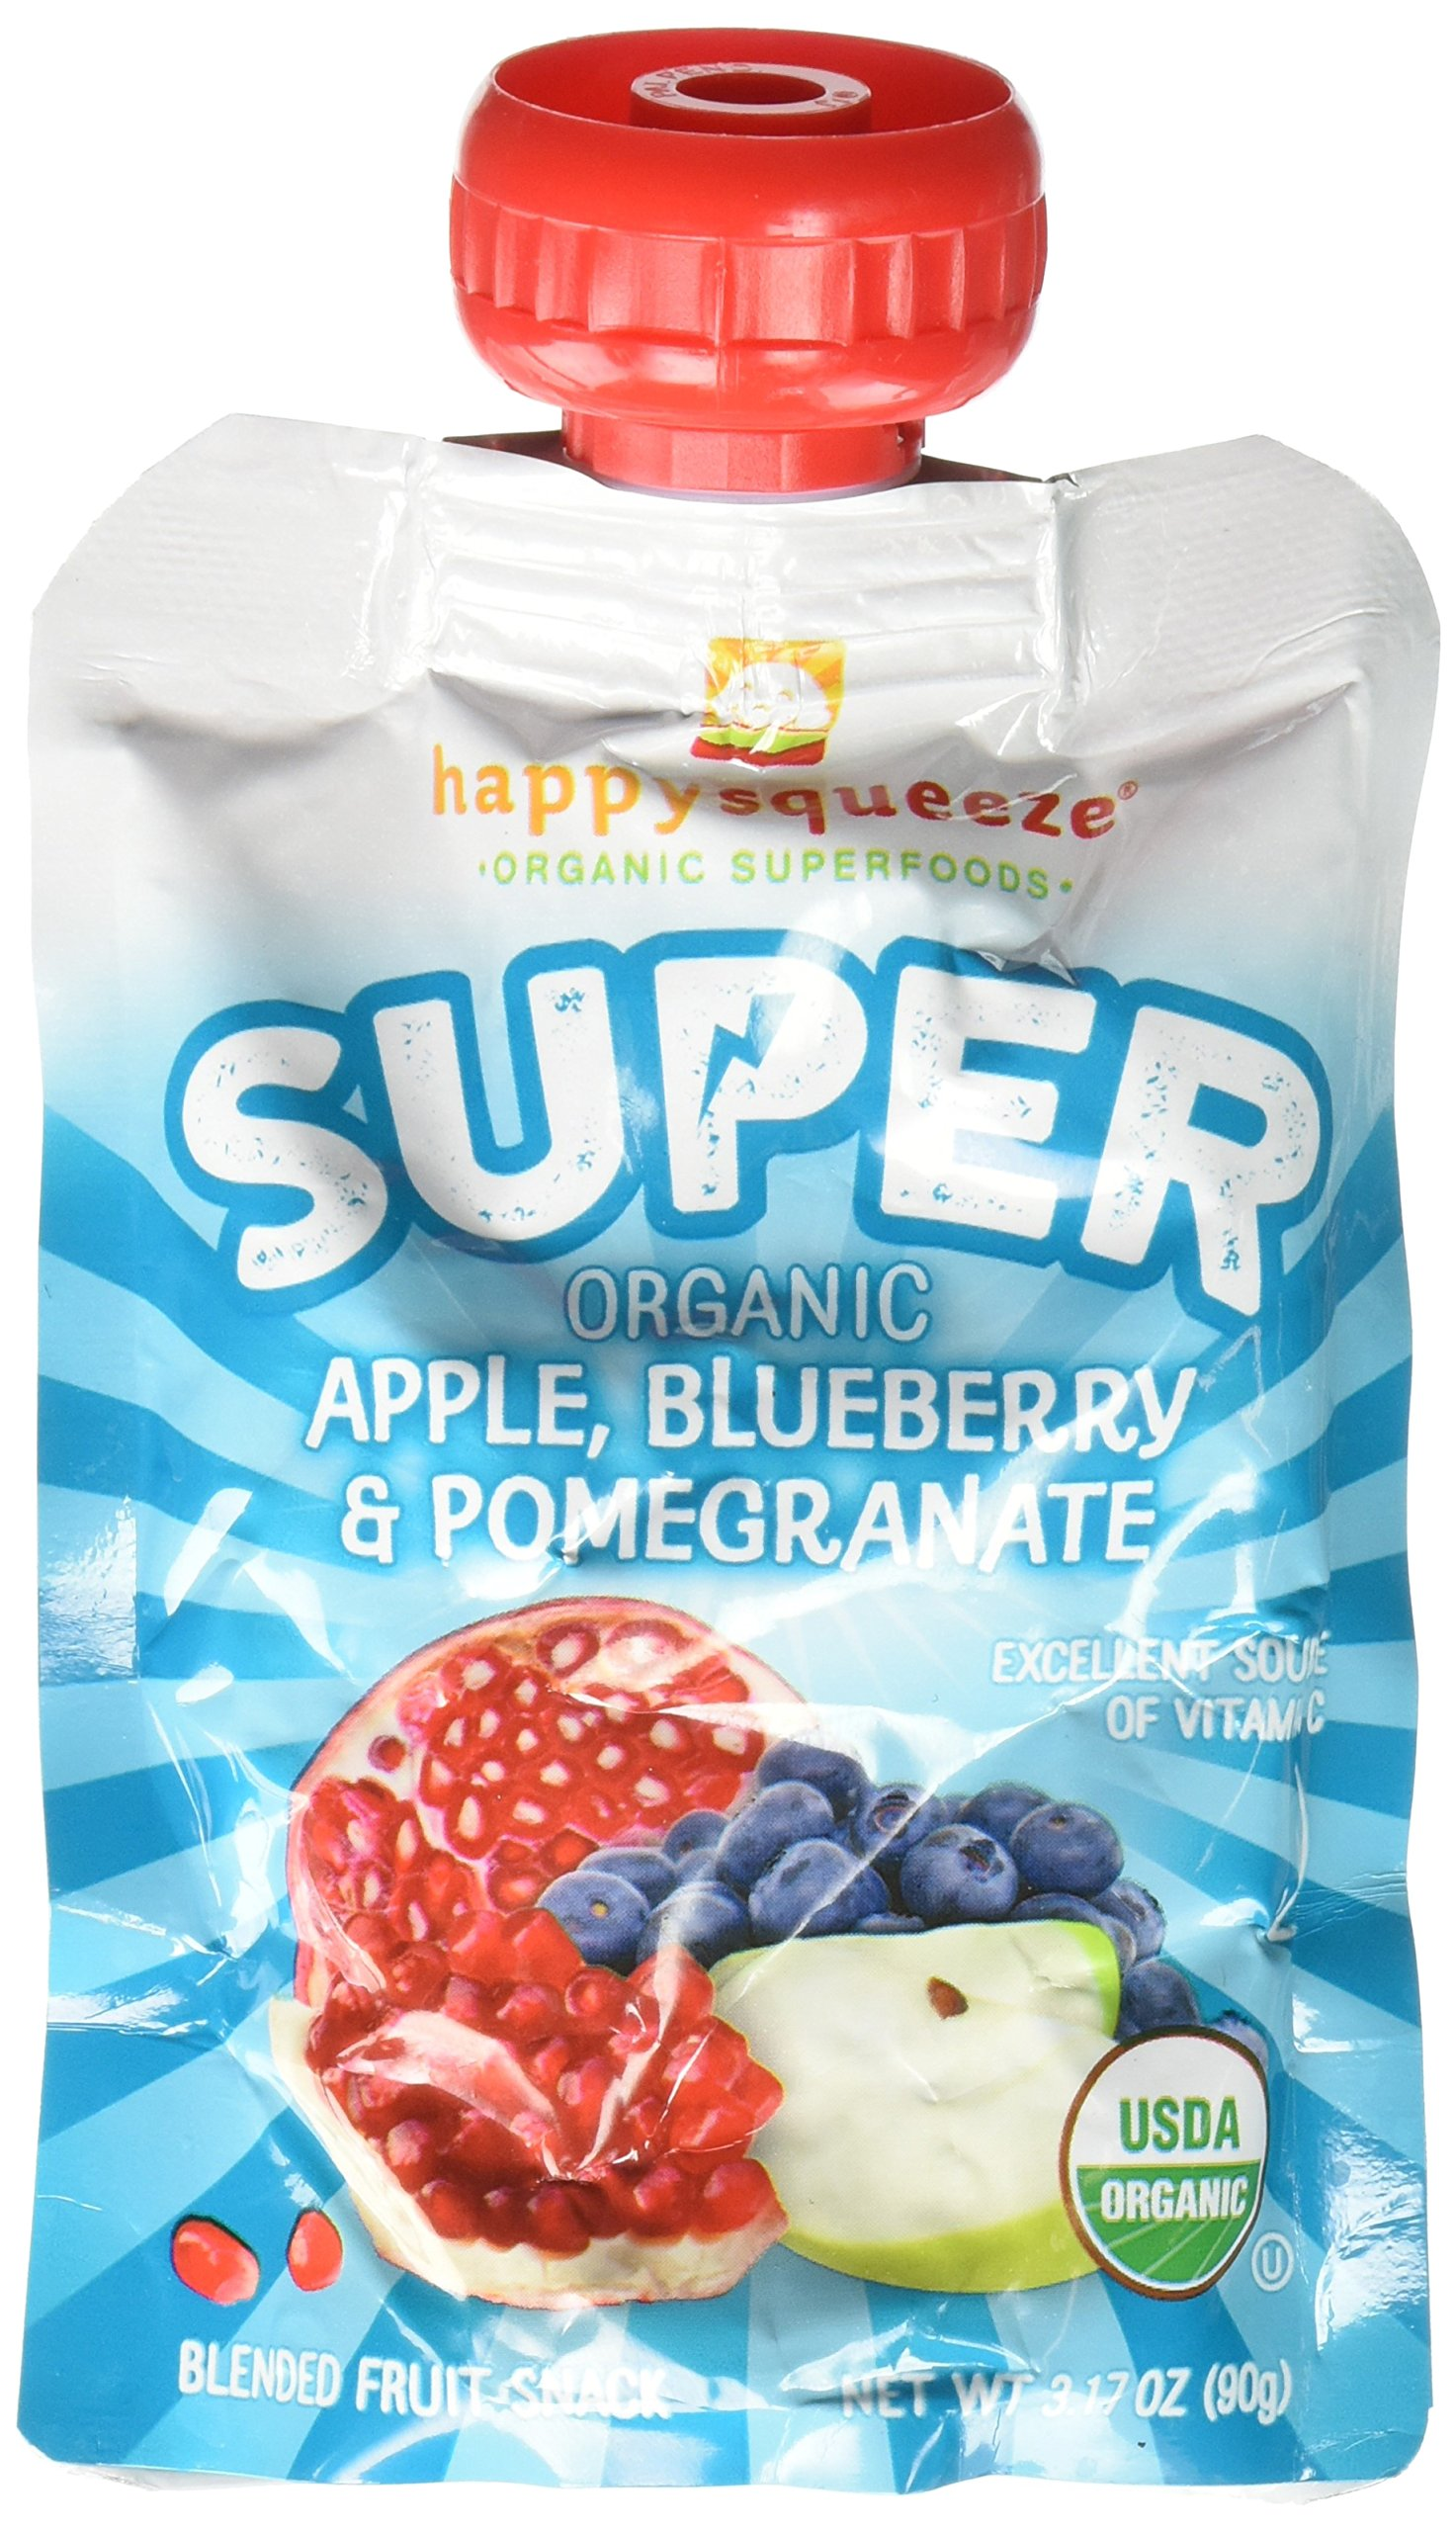 Happy Family happy squeeze Smoothies - Apple Blueberry Pomegranate, 3.17 Oz, 4 Count (Pack of 4)